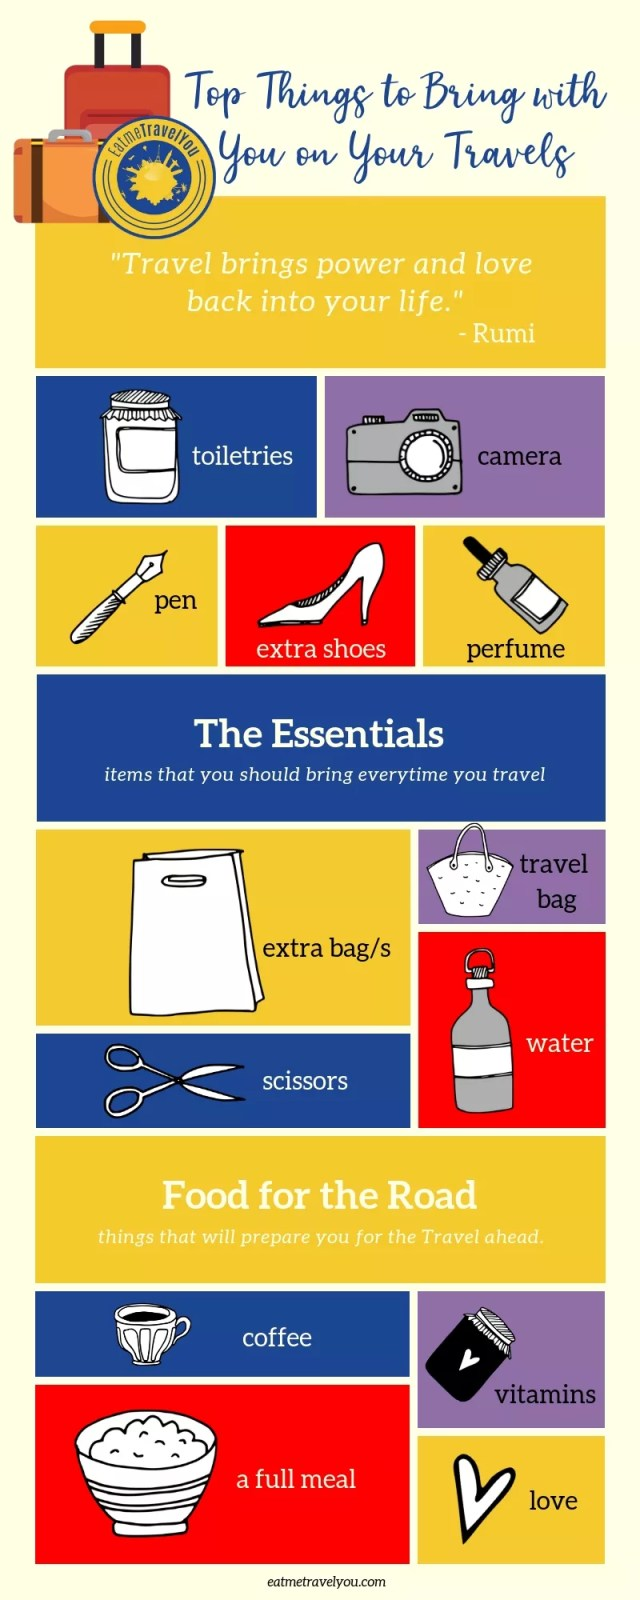 Eat and Travel Together - Top Things to Bring by Eatmetravelyou.com